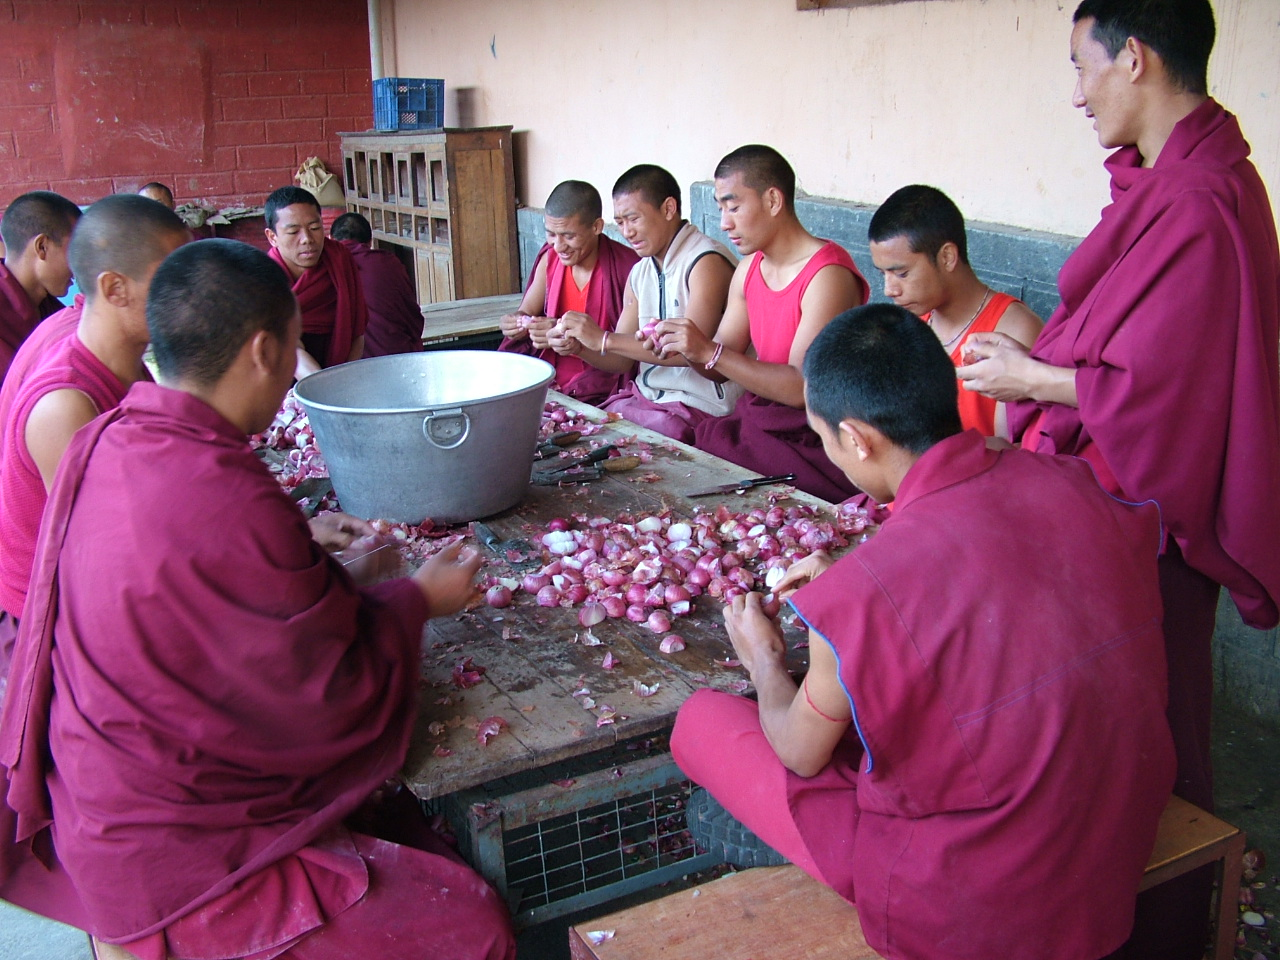 Monks participating in the making of food